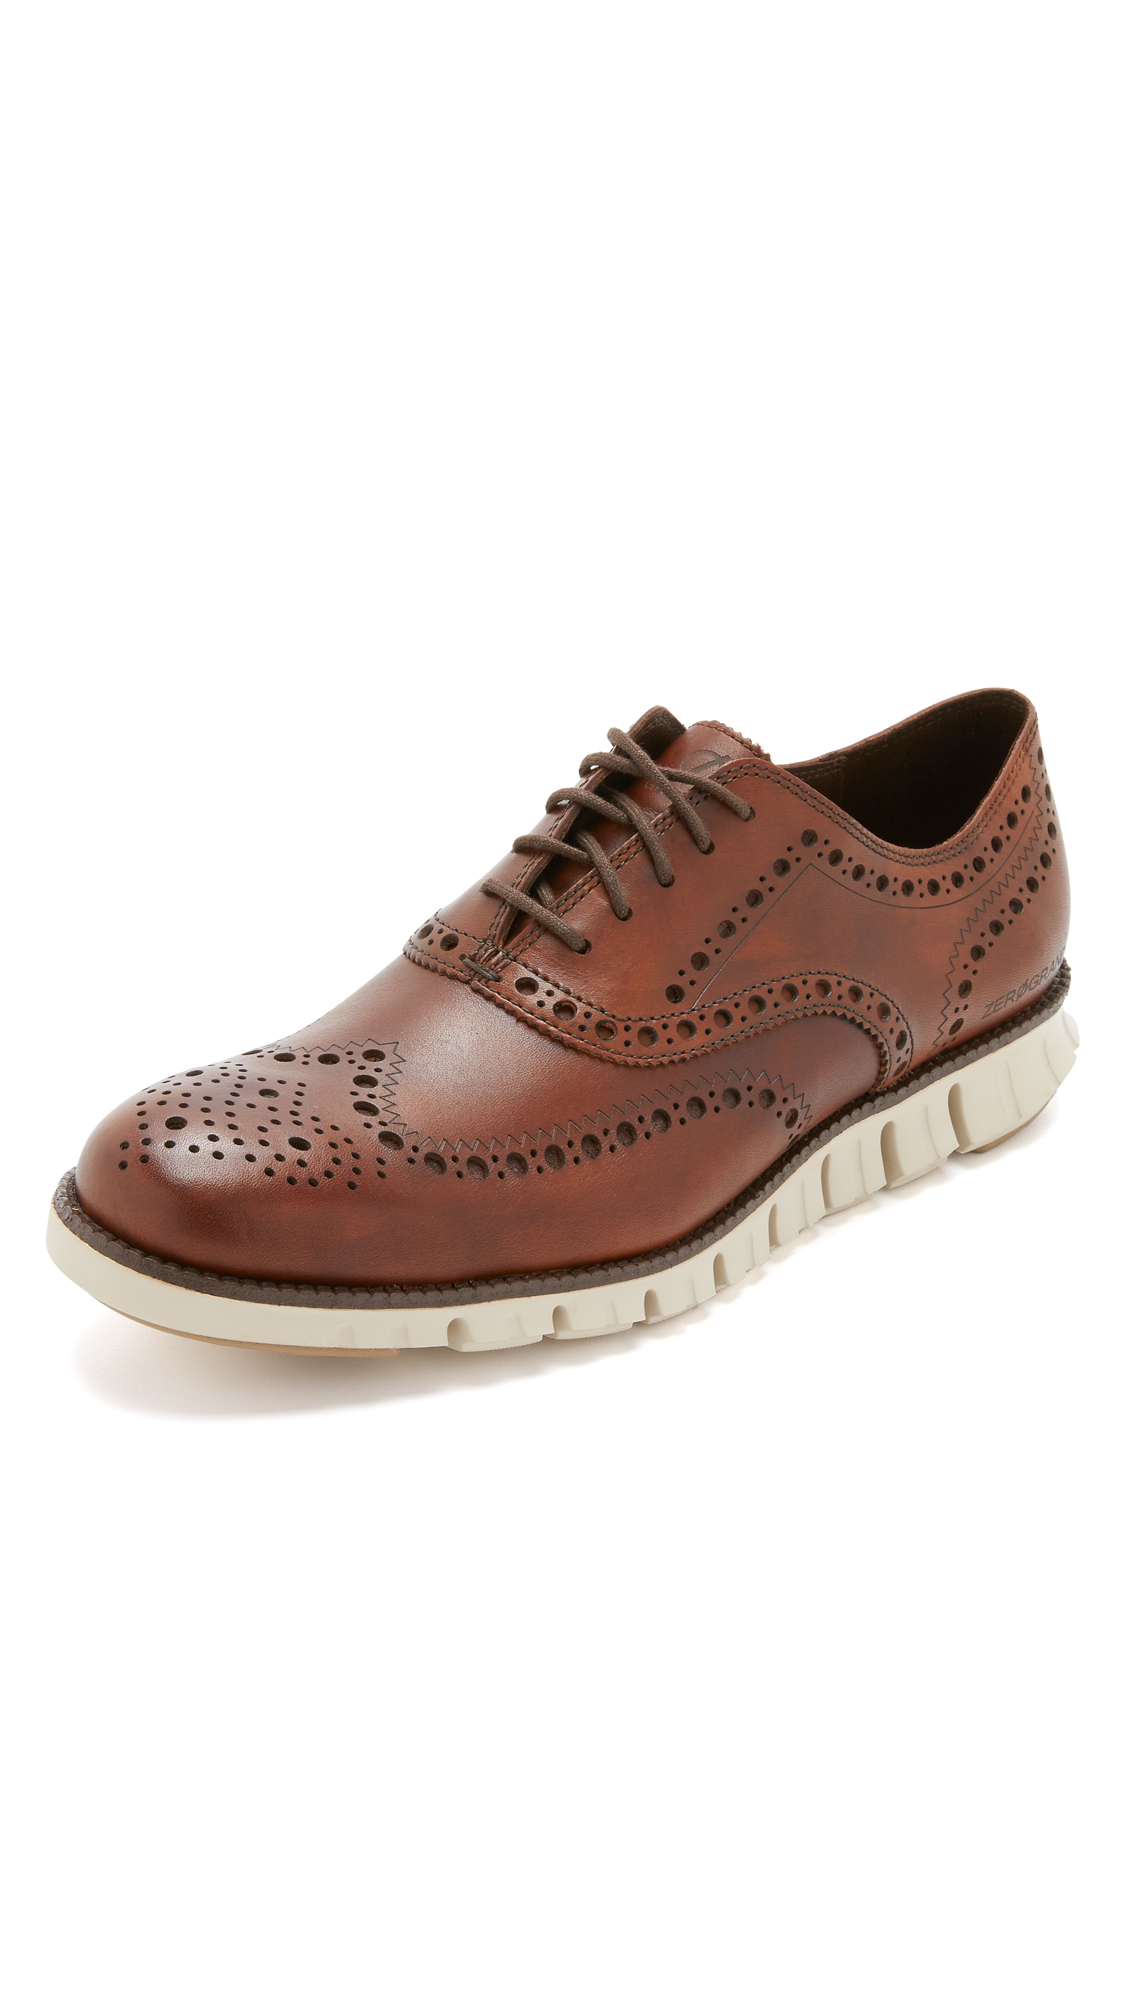 COLE HAAN Men'S Zerogrand Leather Wing-Tip Oxford, Brown in British Tan